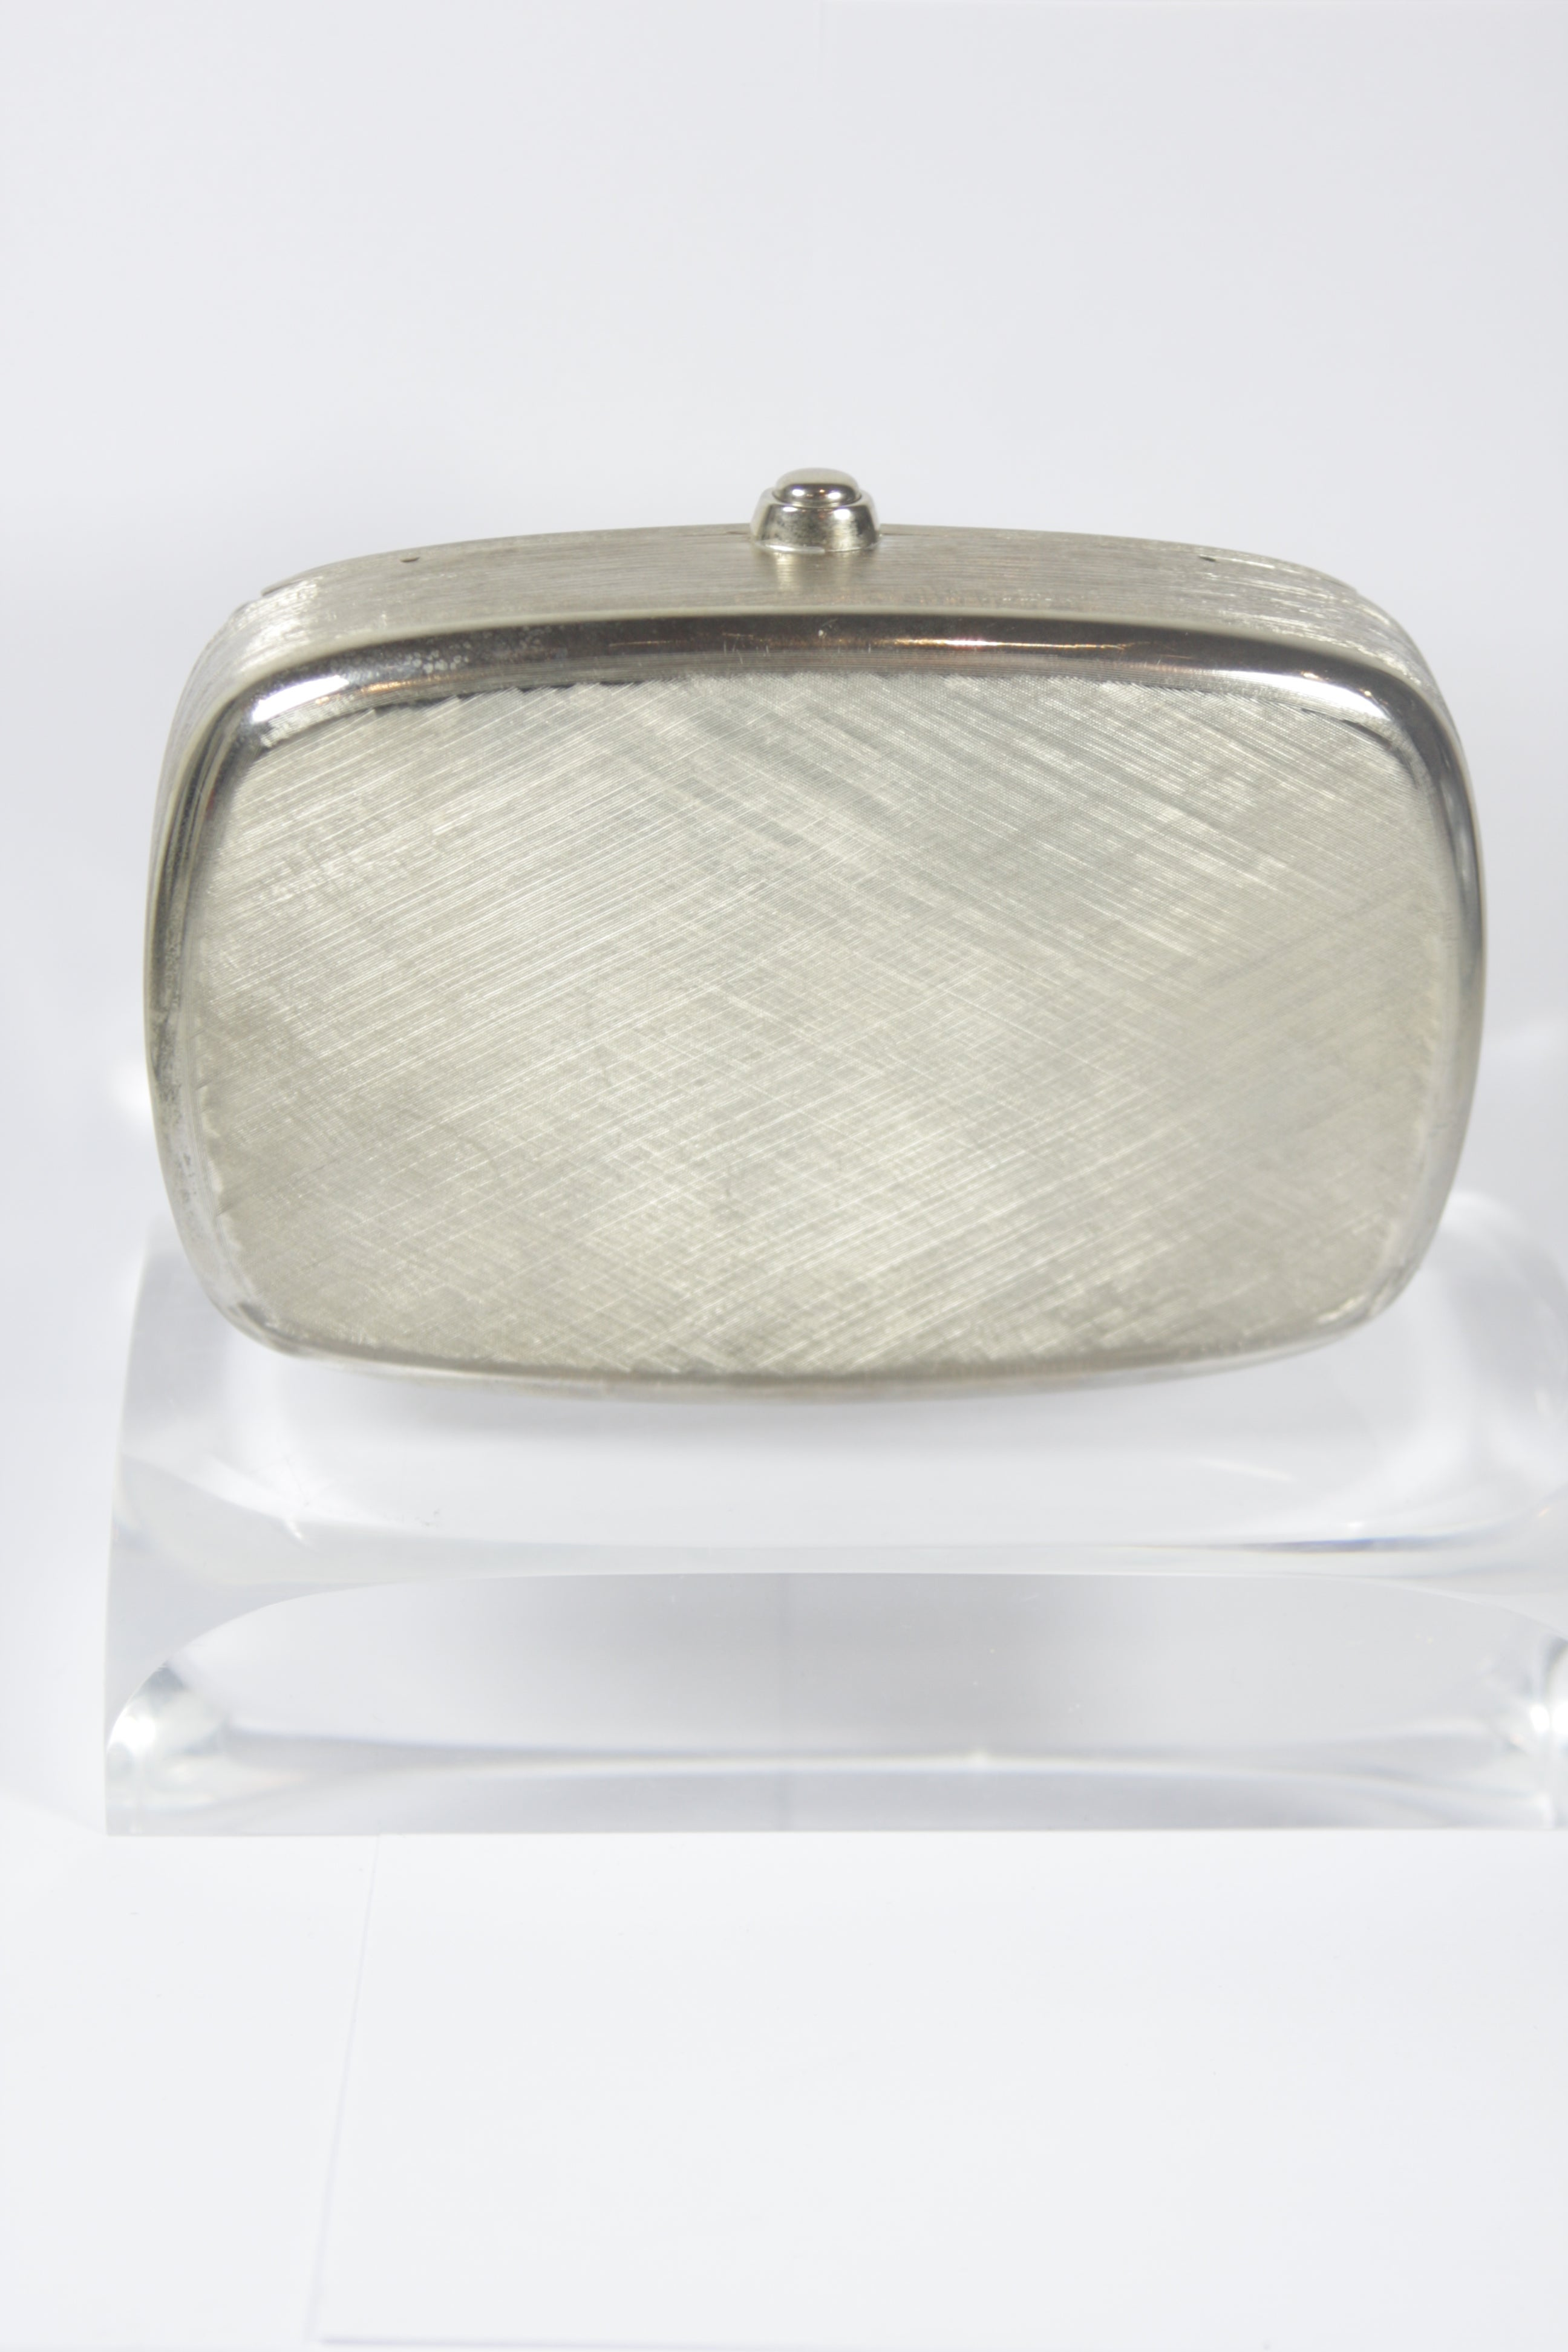 Judith Leiber Brushed Metal Evening Purse With Stone Details Optional Strap NOaZasUJT